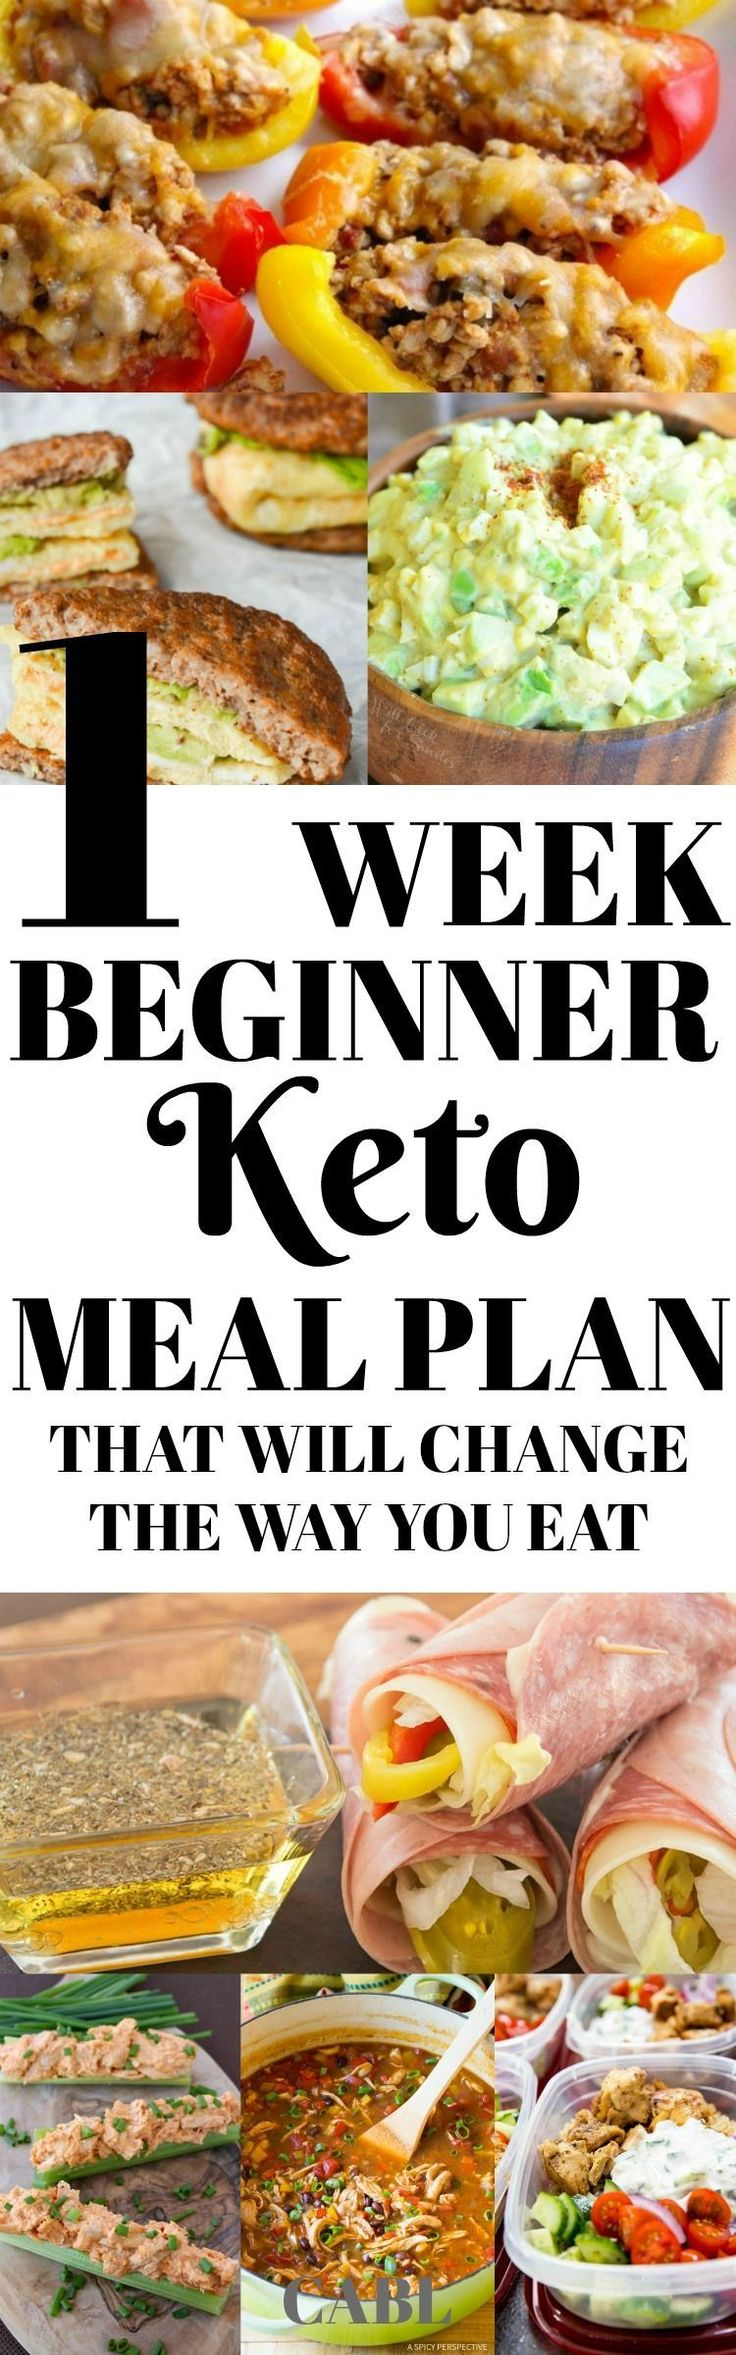 21 Recipes For A Week of Keto That Tastes Amazing And Help ...